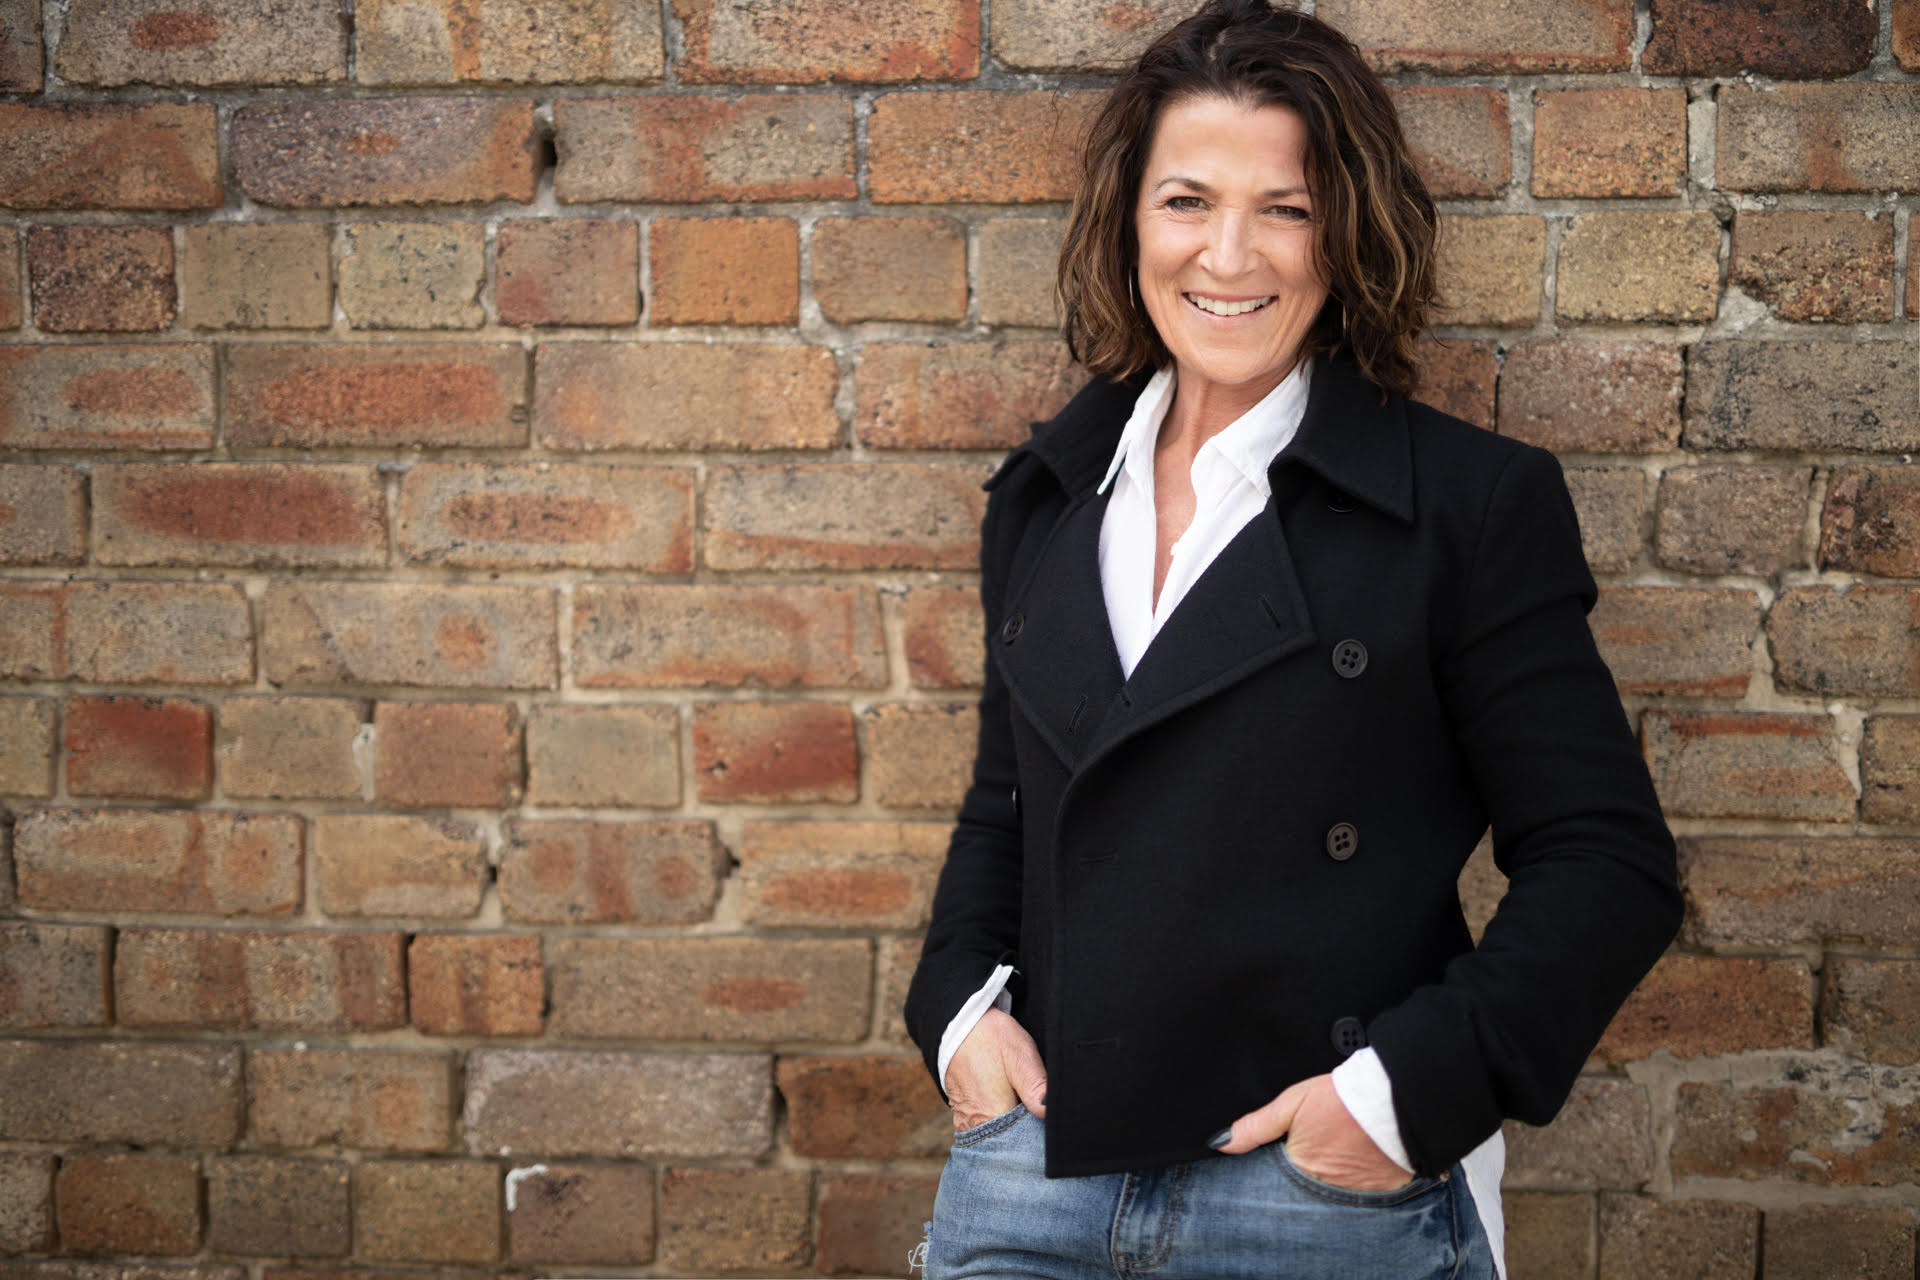 Karen Matthews is a proven business transformation expert and retail growth consultant